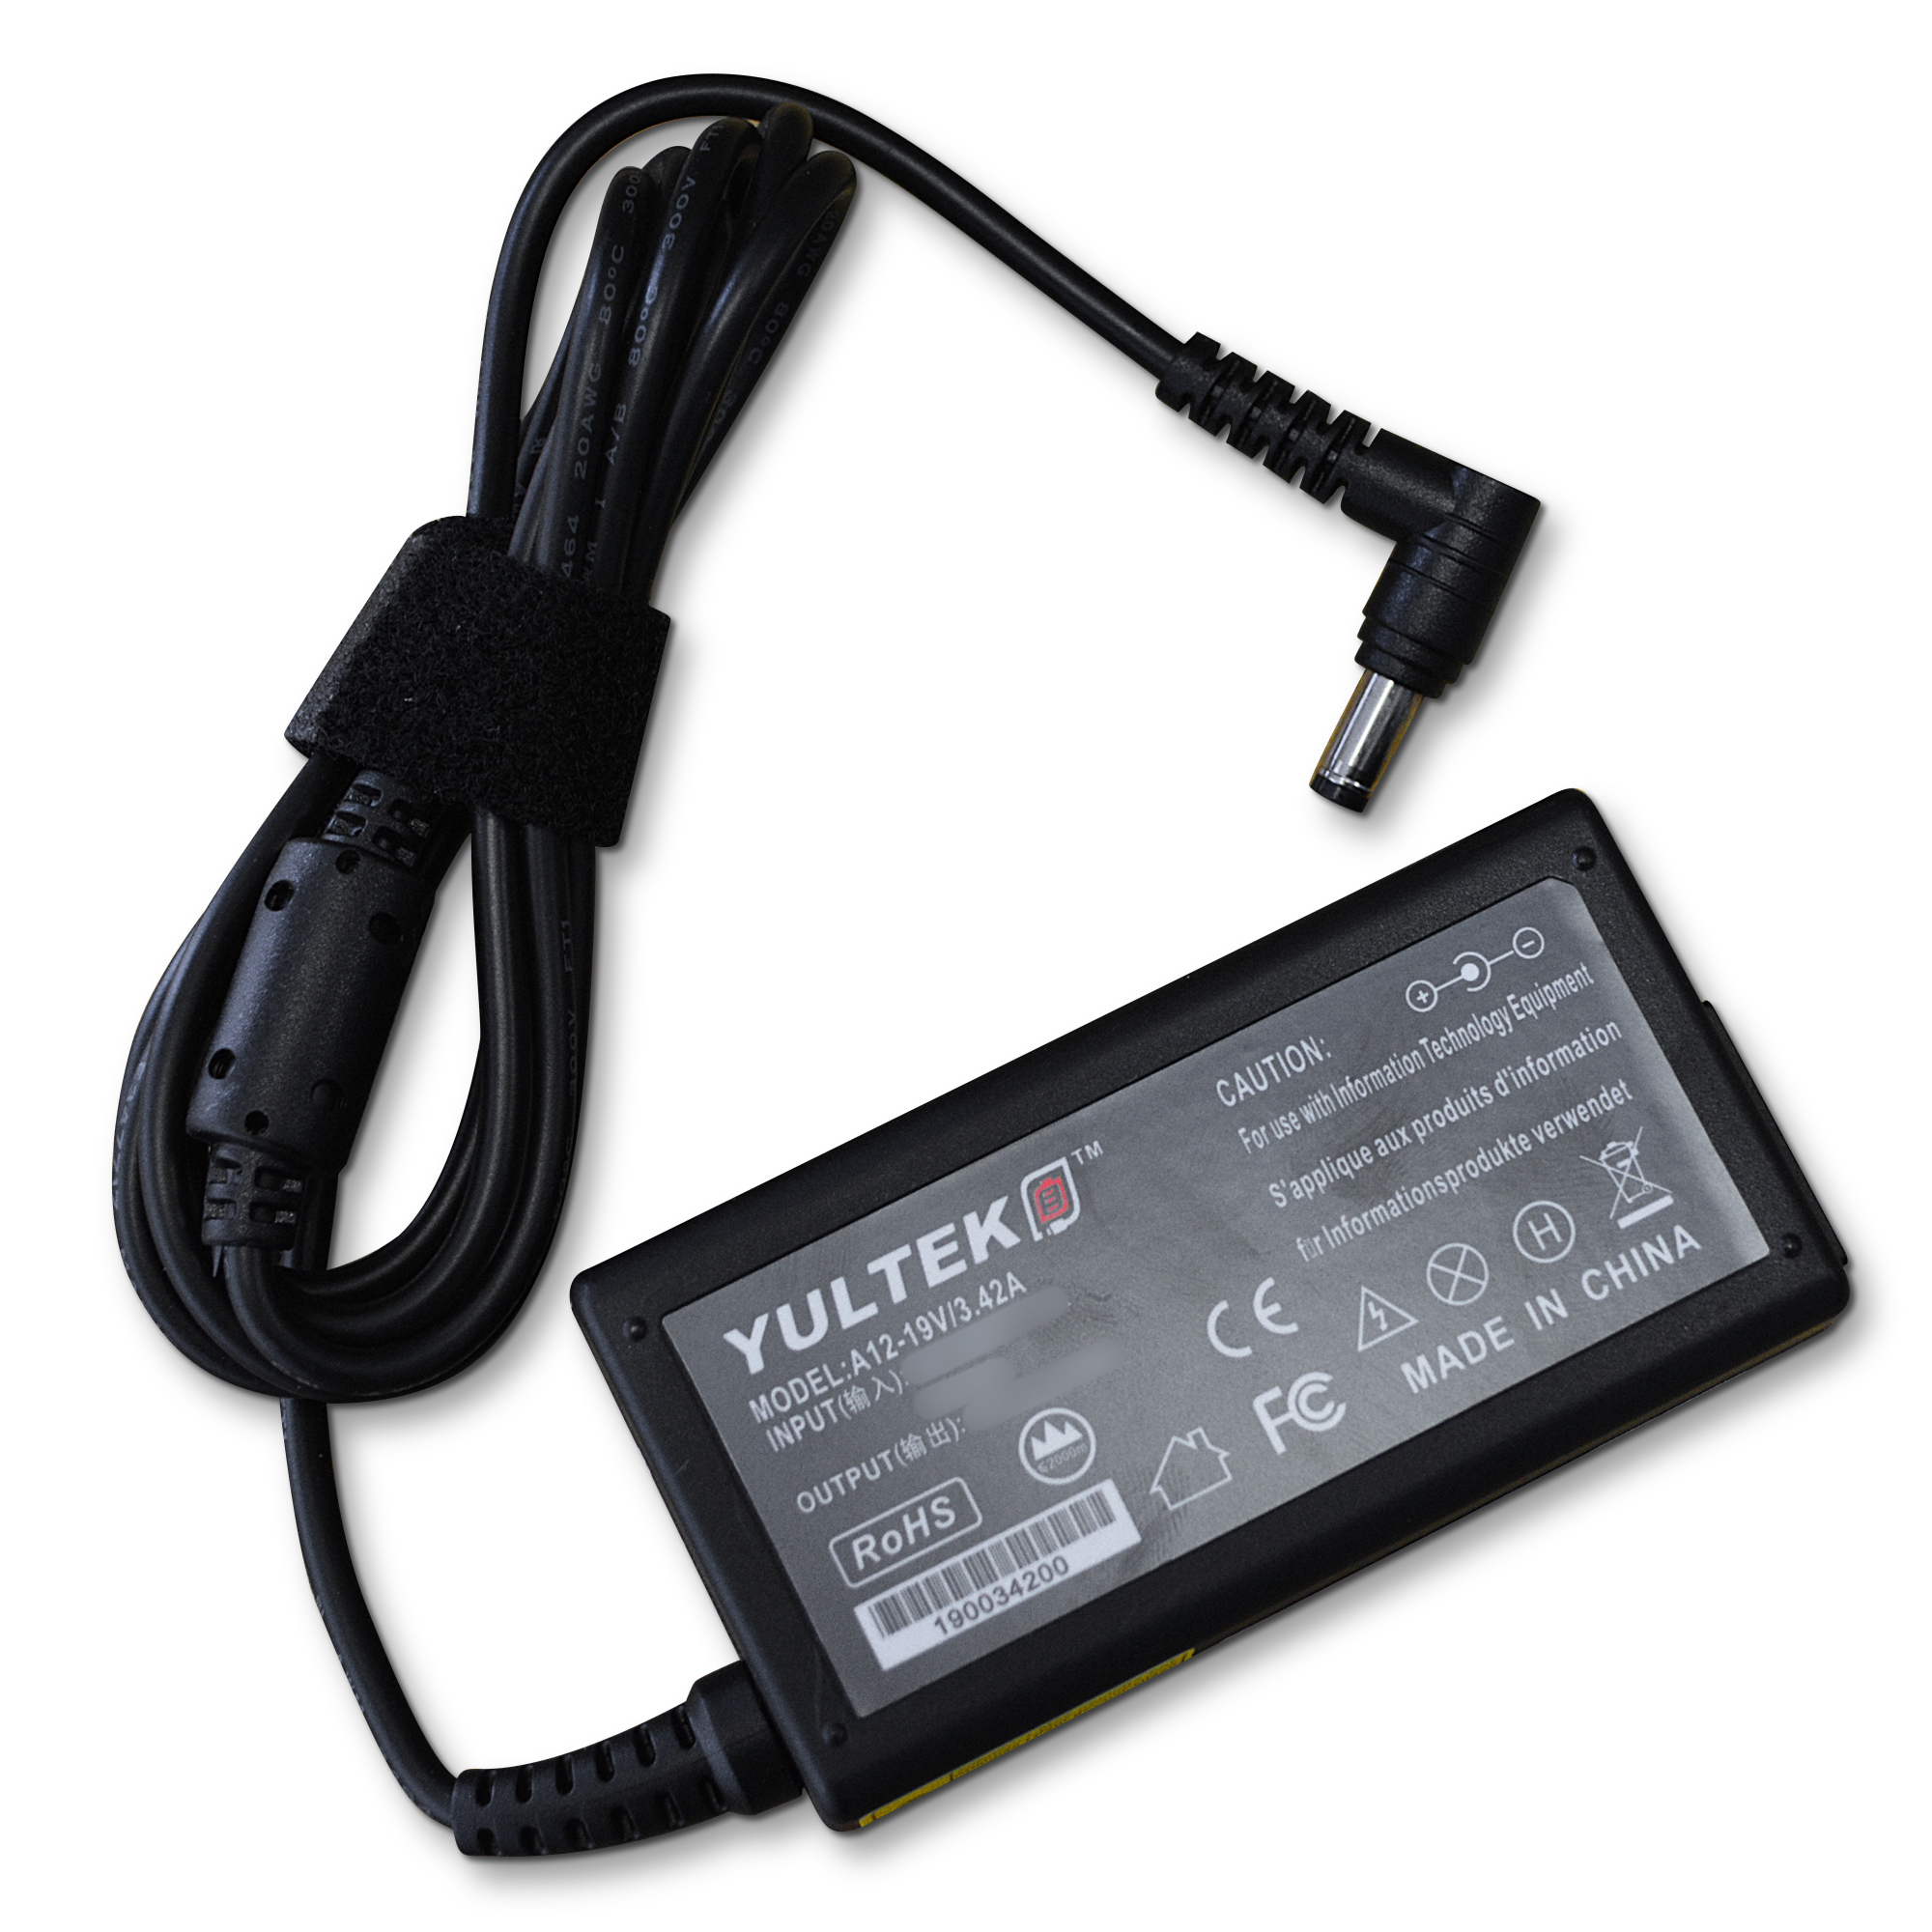 Fujitsu-Siemens Part Number WTS:25.10180.061 Laptop Charger